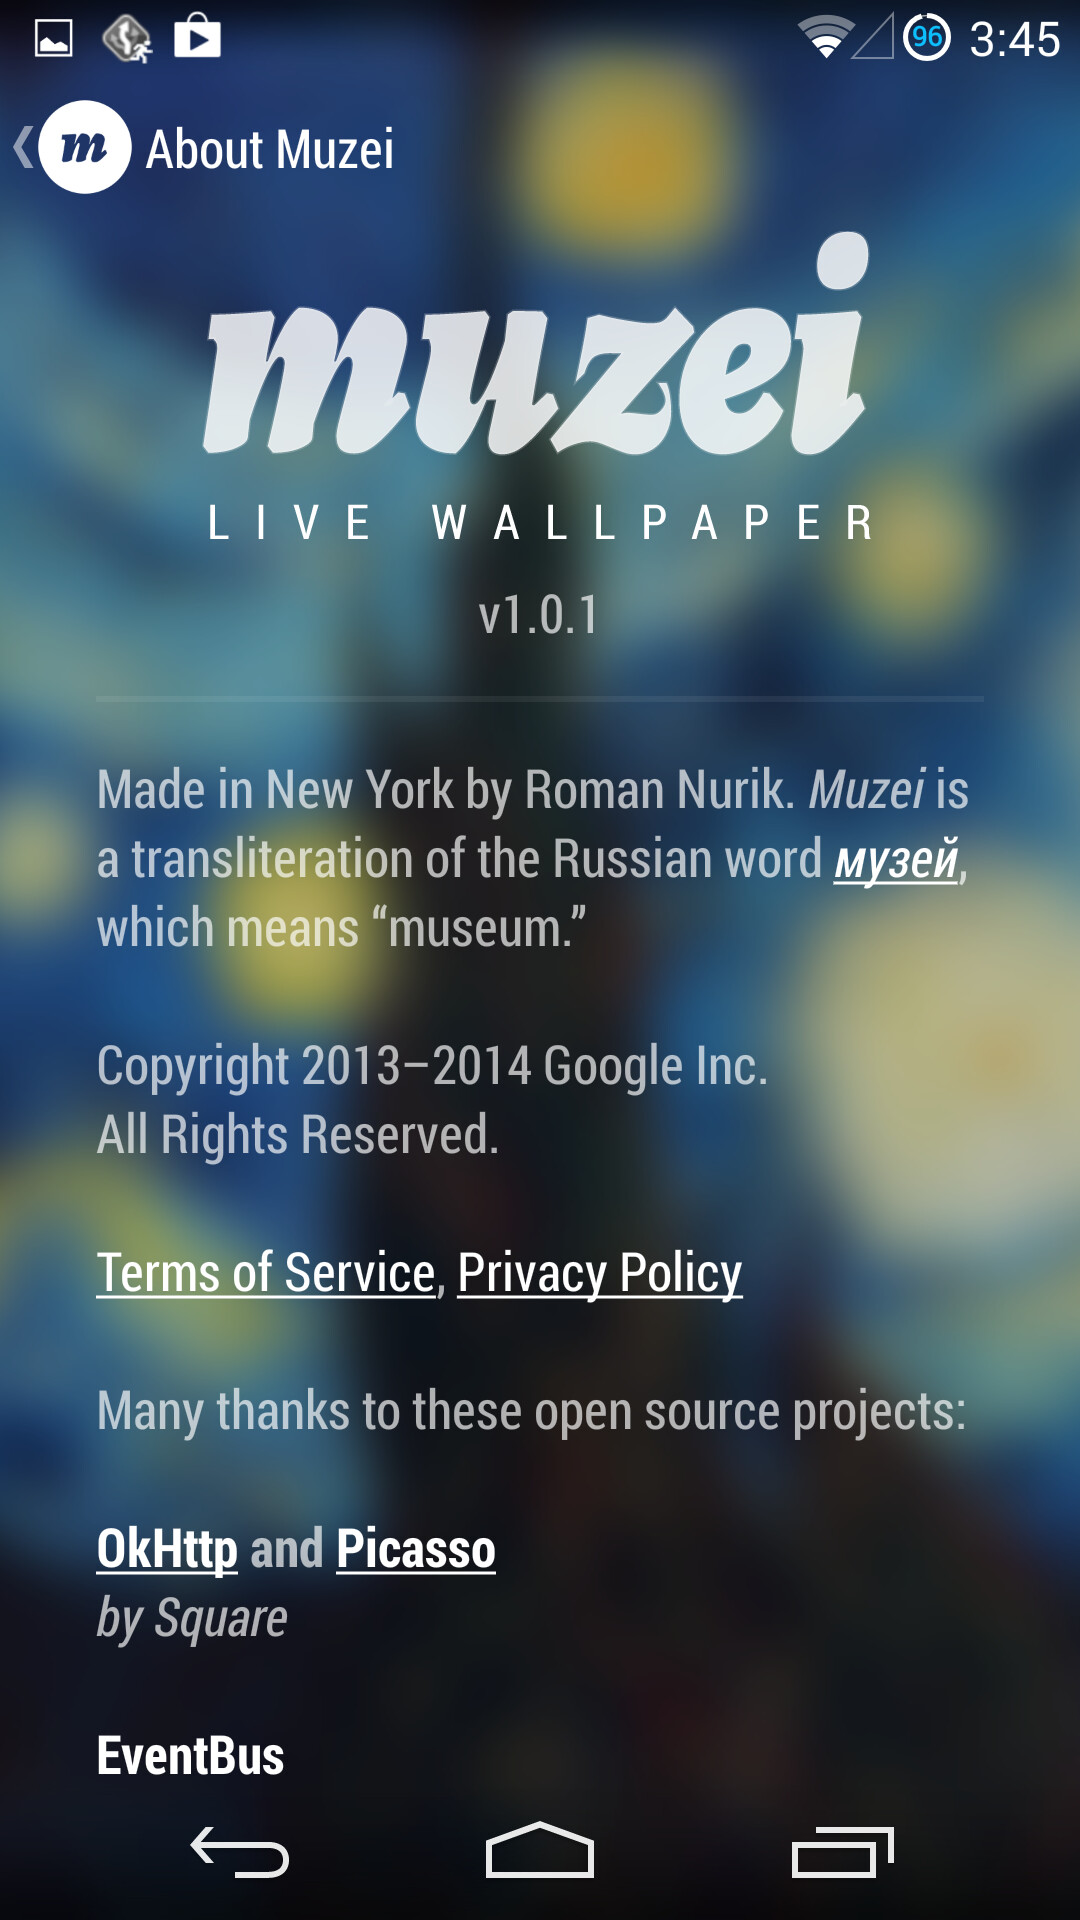 the muzei live wallpaper app